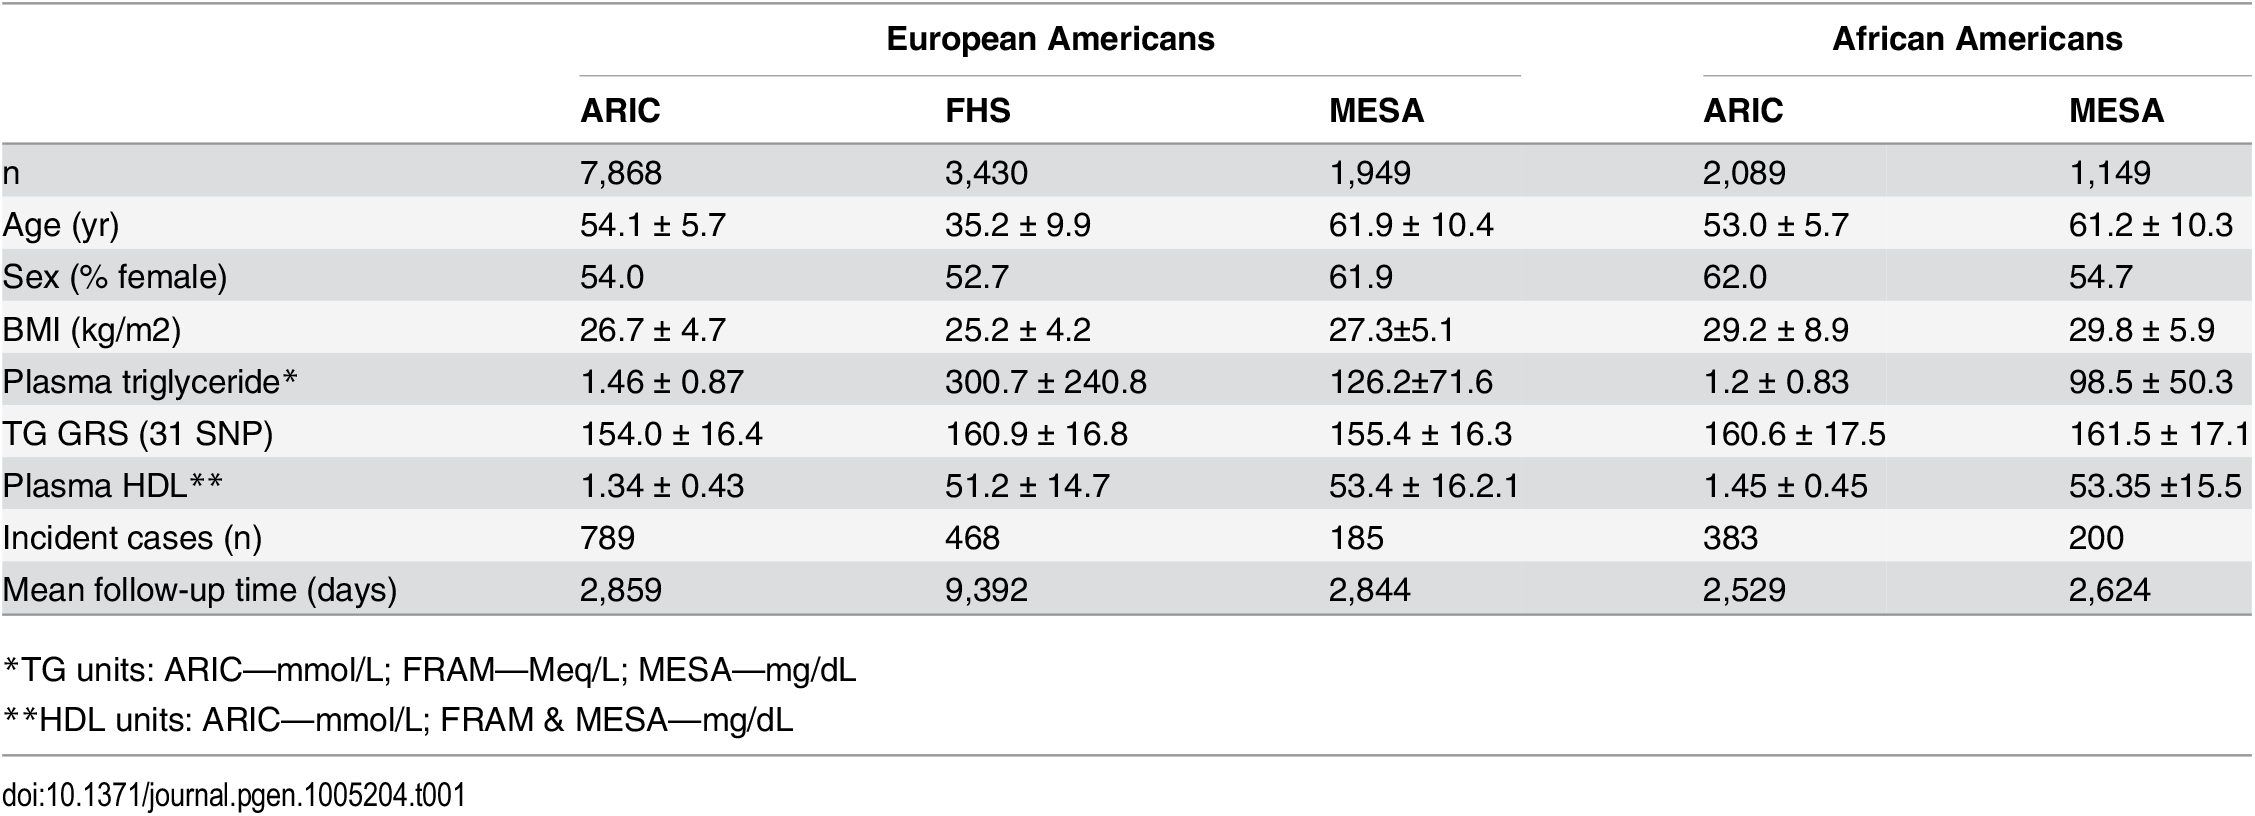 Characteristics of the three samples of European-Americans and two samples of African-Americans.